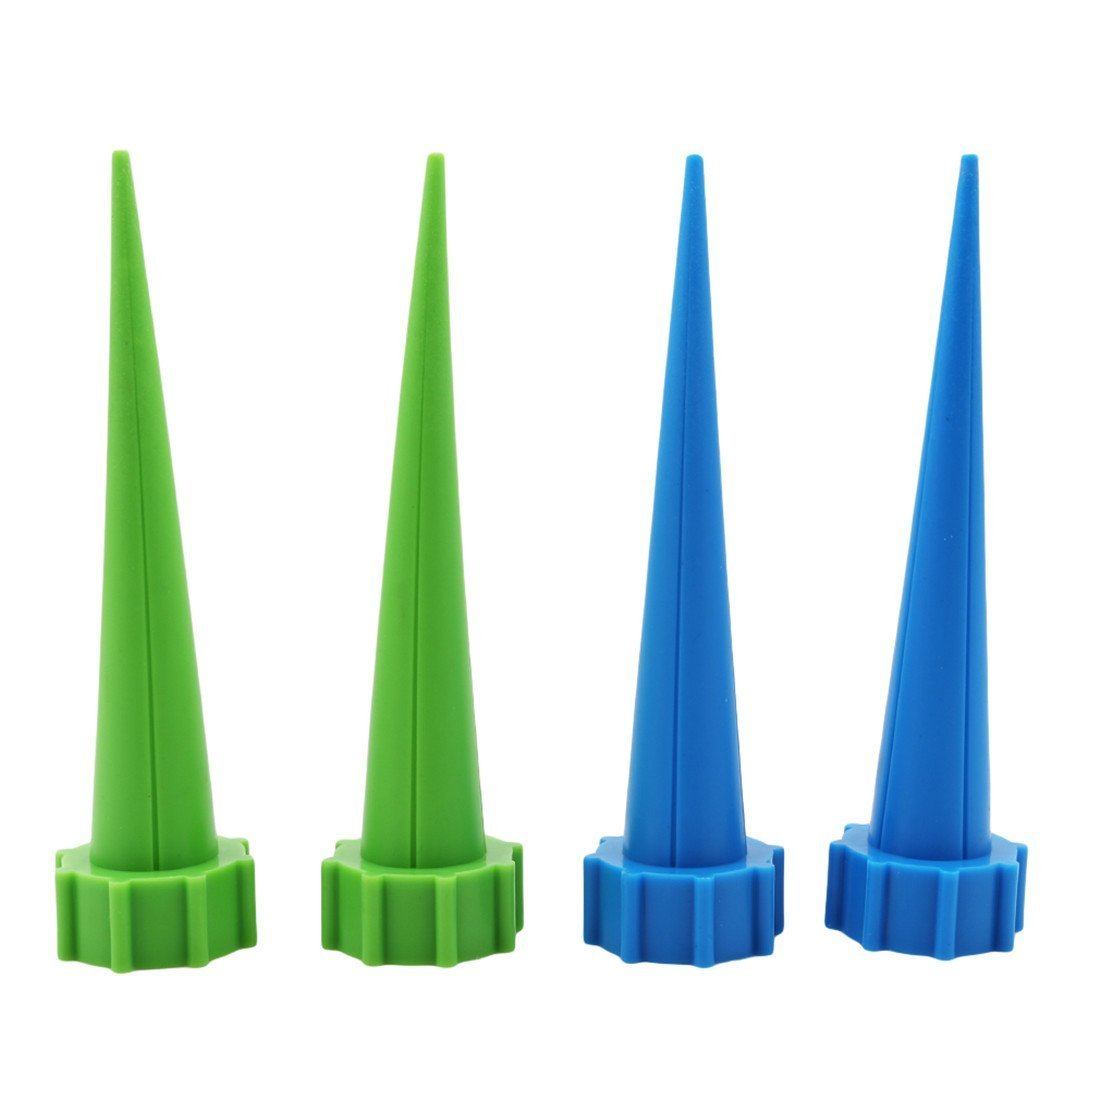 Everyfit Plant Waterer Self Watering Spikes Waterers Bottle Slow Release Self Irrigation System Automatic Garden Water Control Drip Cone Spike Flower Plant (4pack) China